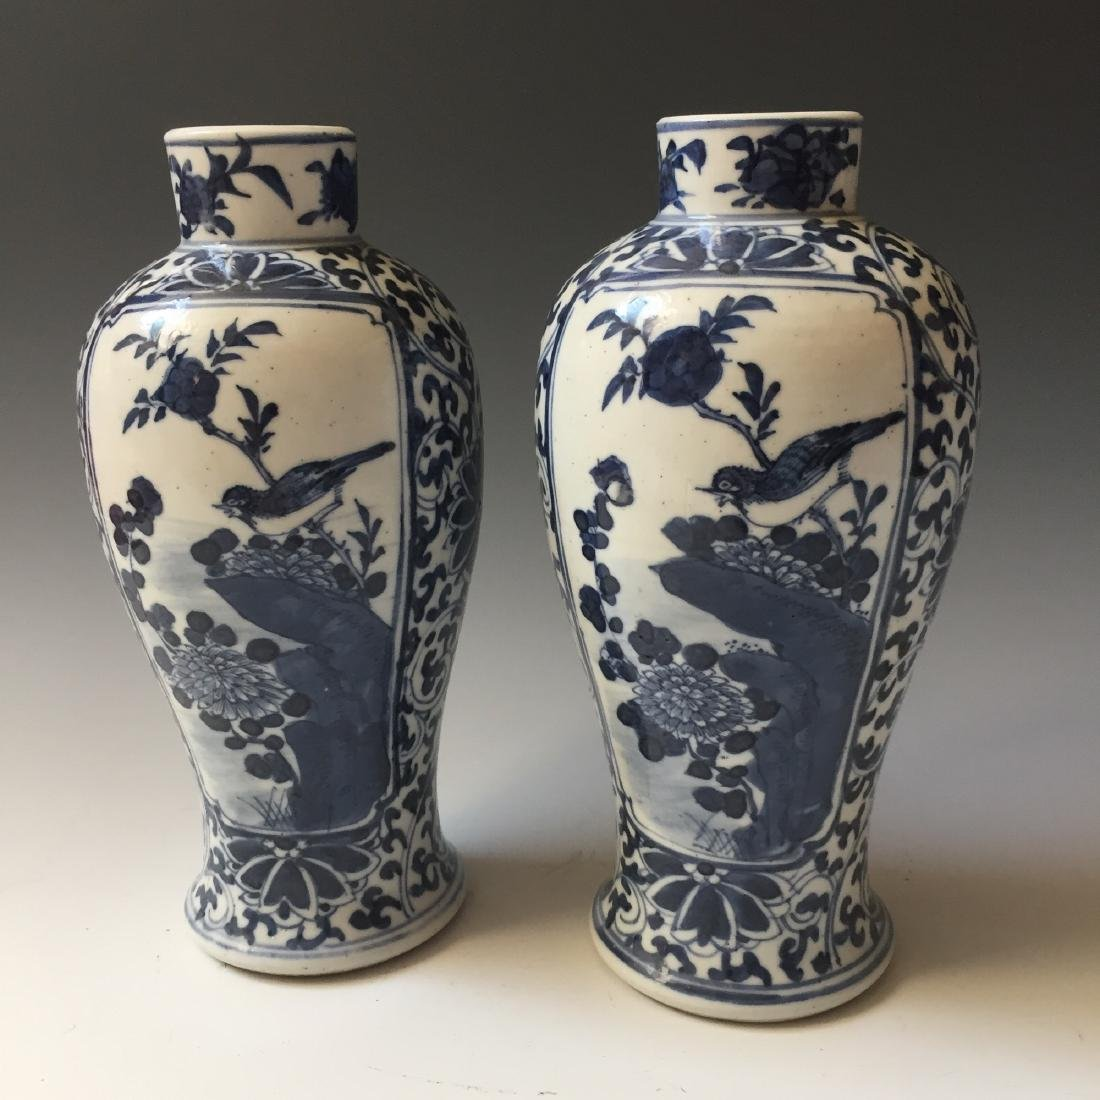 A PAIR CHINESE ANTIQUE BLUE AND WHITE VASE,19C.